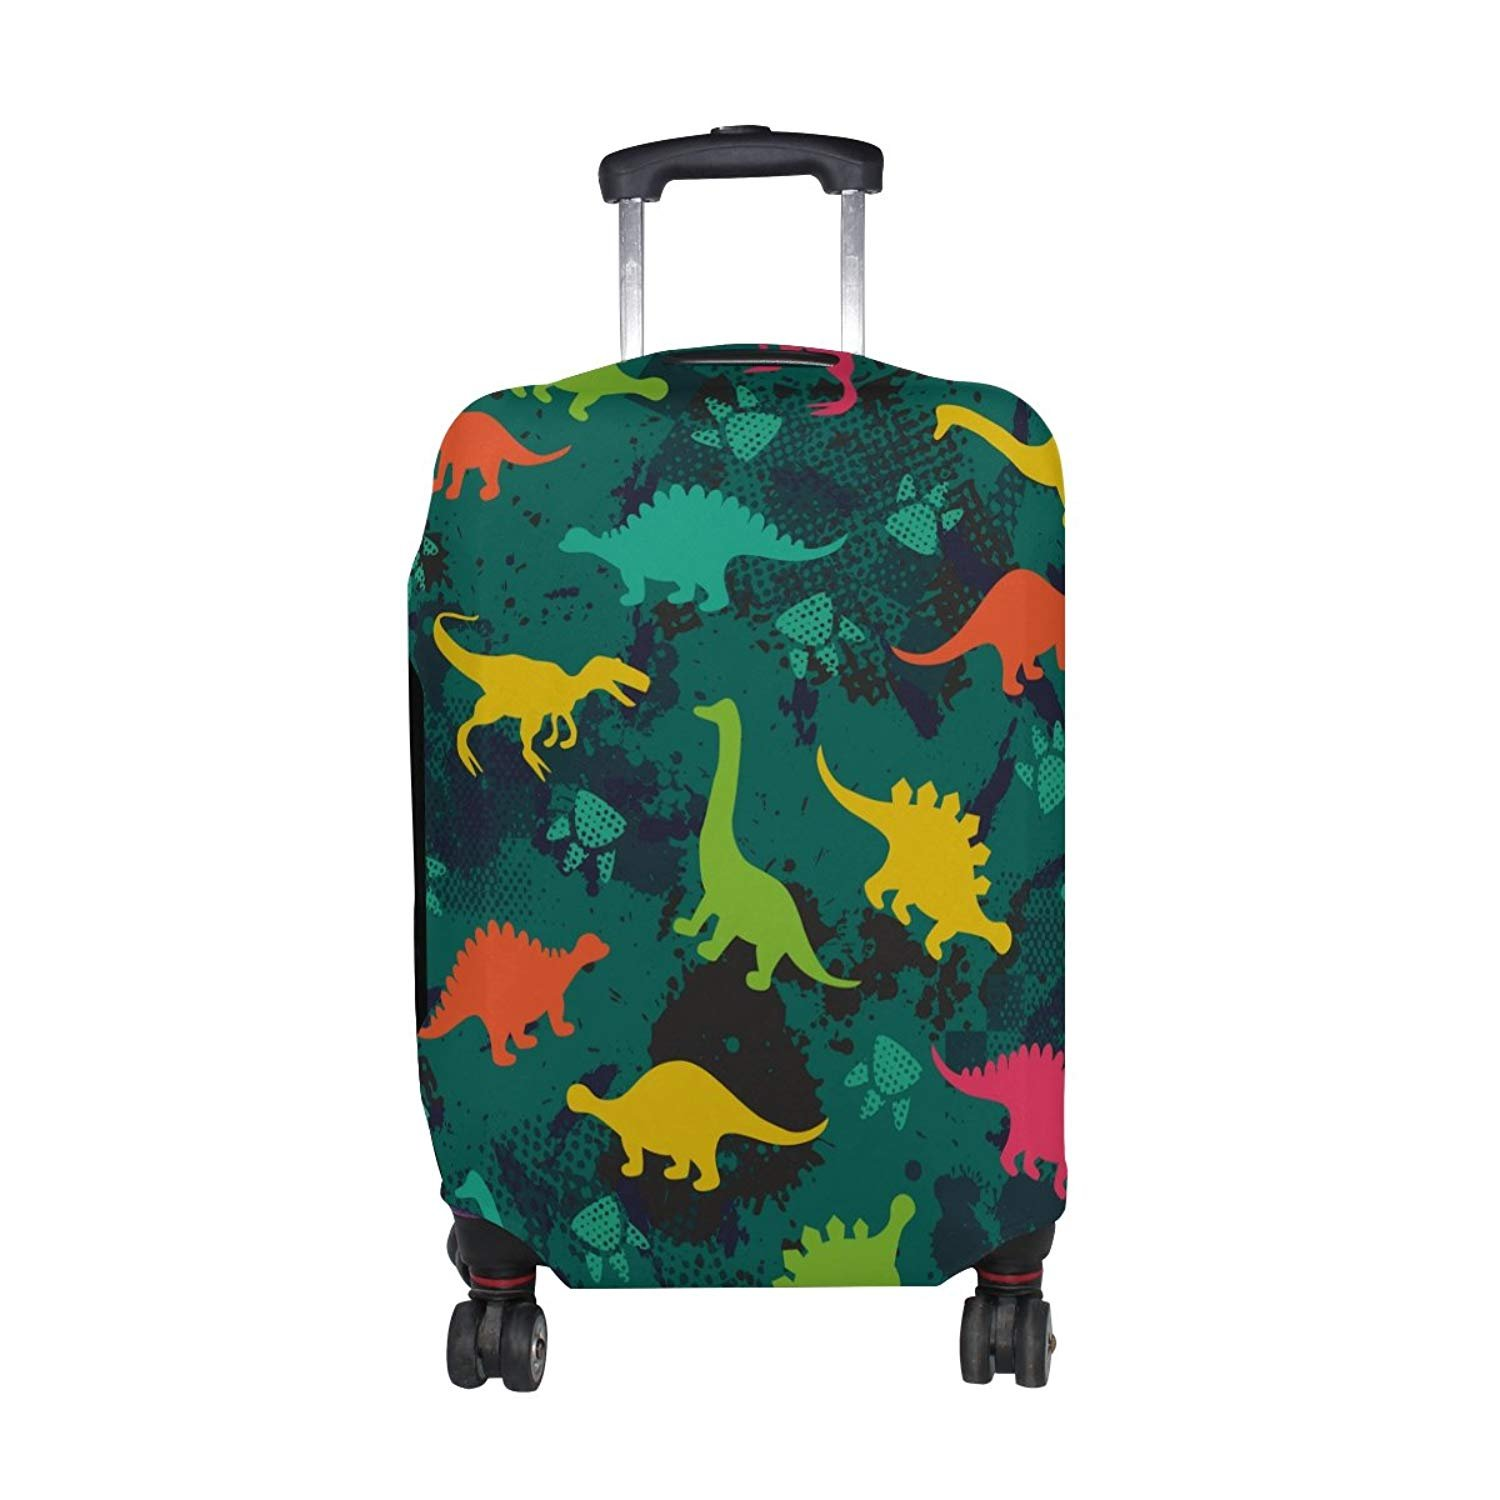 Cute Cartoon Dinosaur Pattern Print Luggage Cover Travel Suitcase Protector Fits 18-21 Inch Luggage